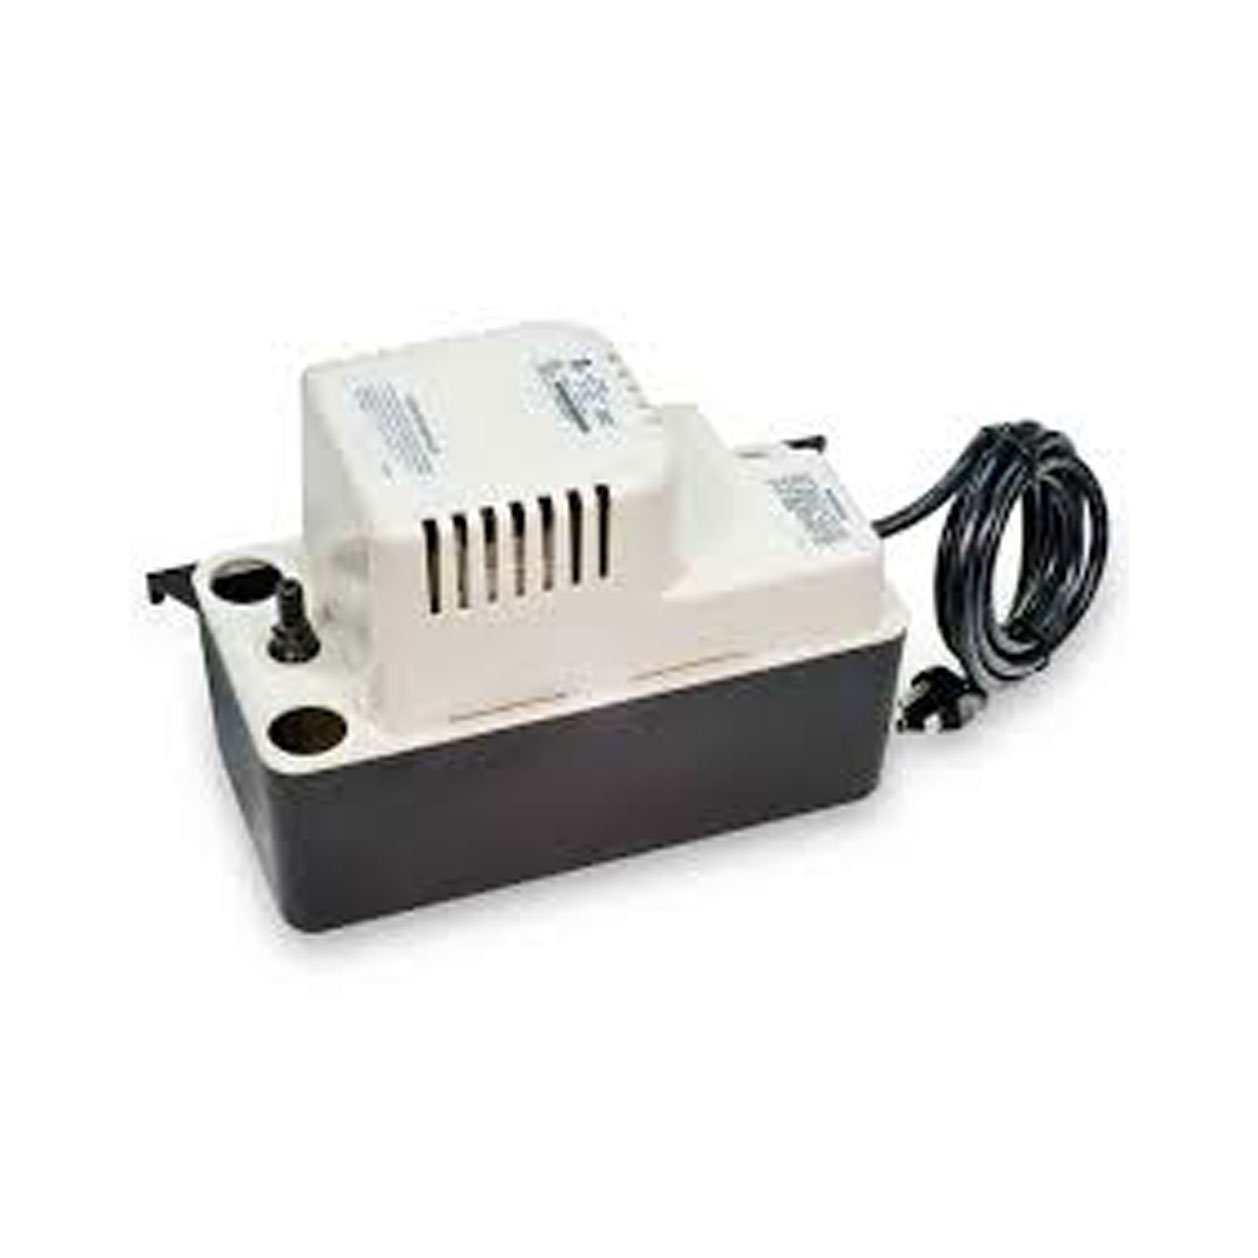 Little Giant 554435 VCMA-20ULST-115 Condensate Removal Pump, 115V by LITTLE GIANT